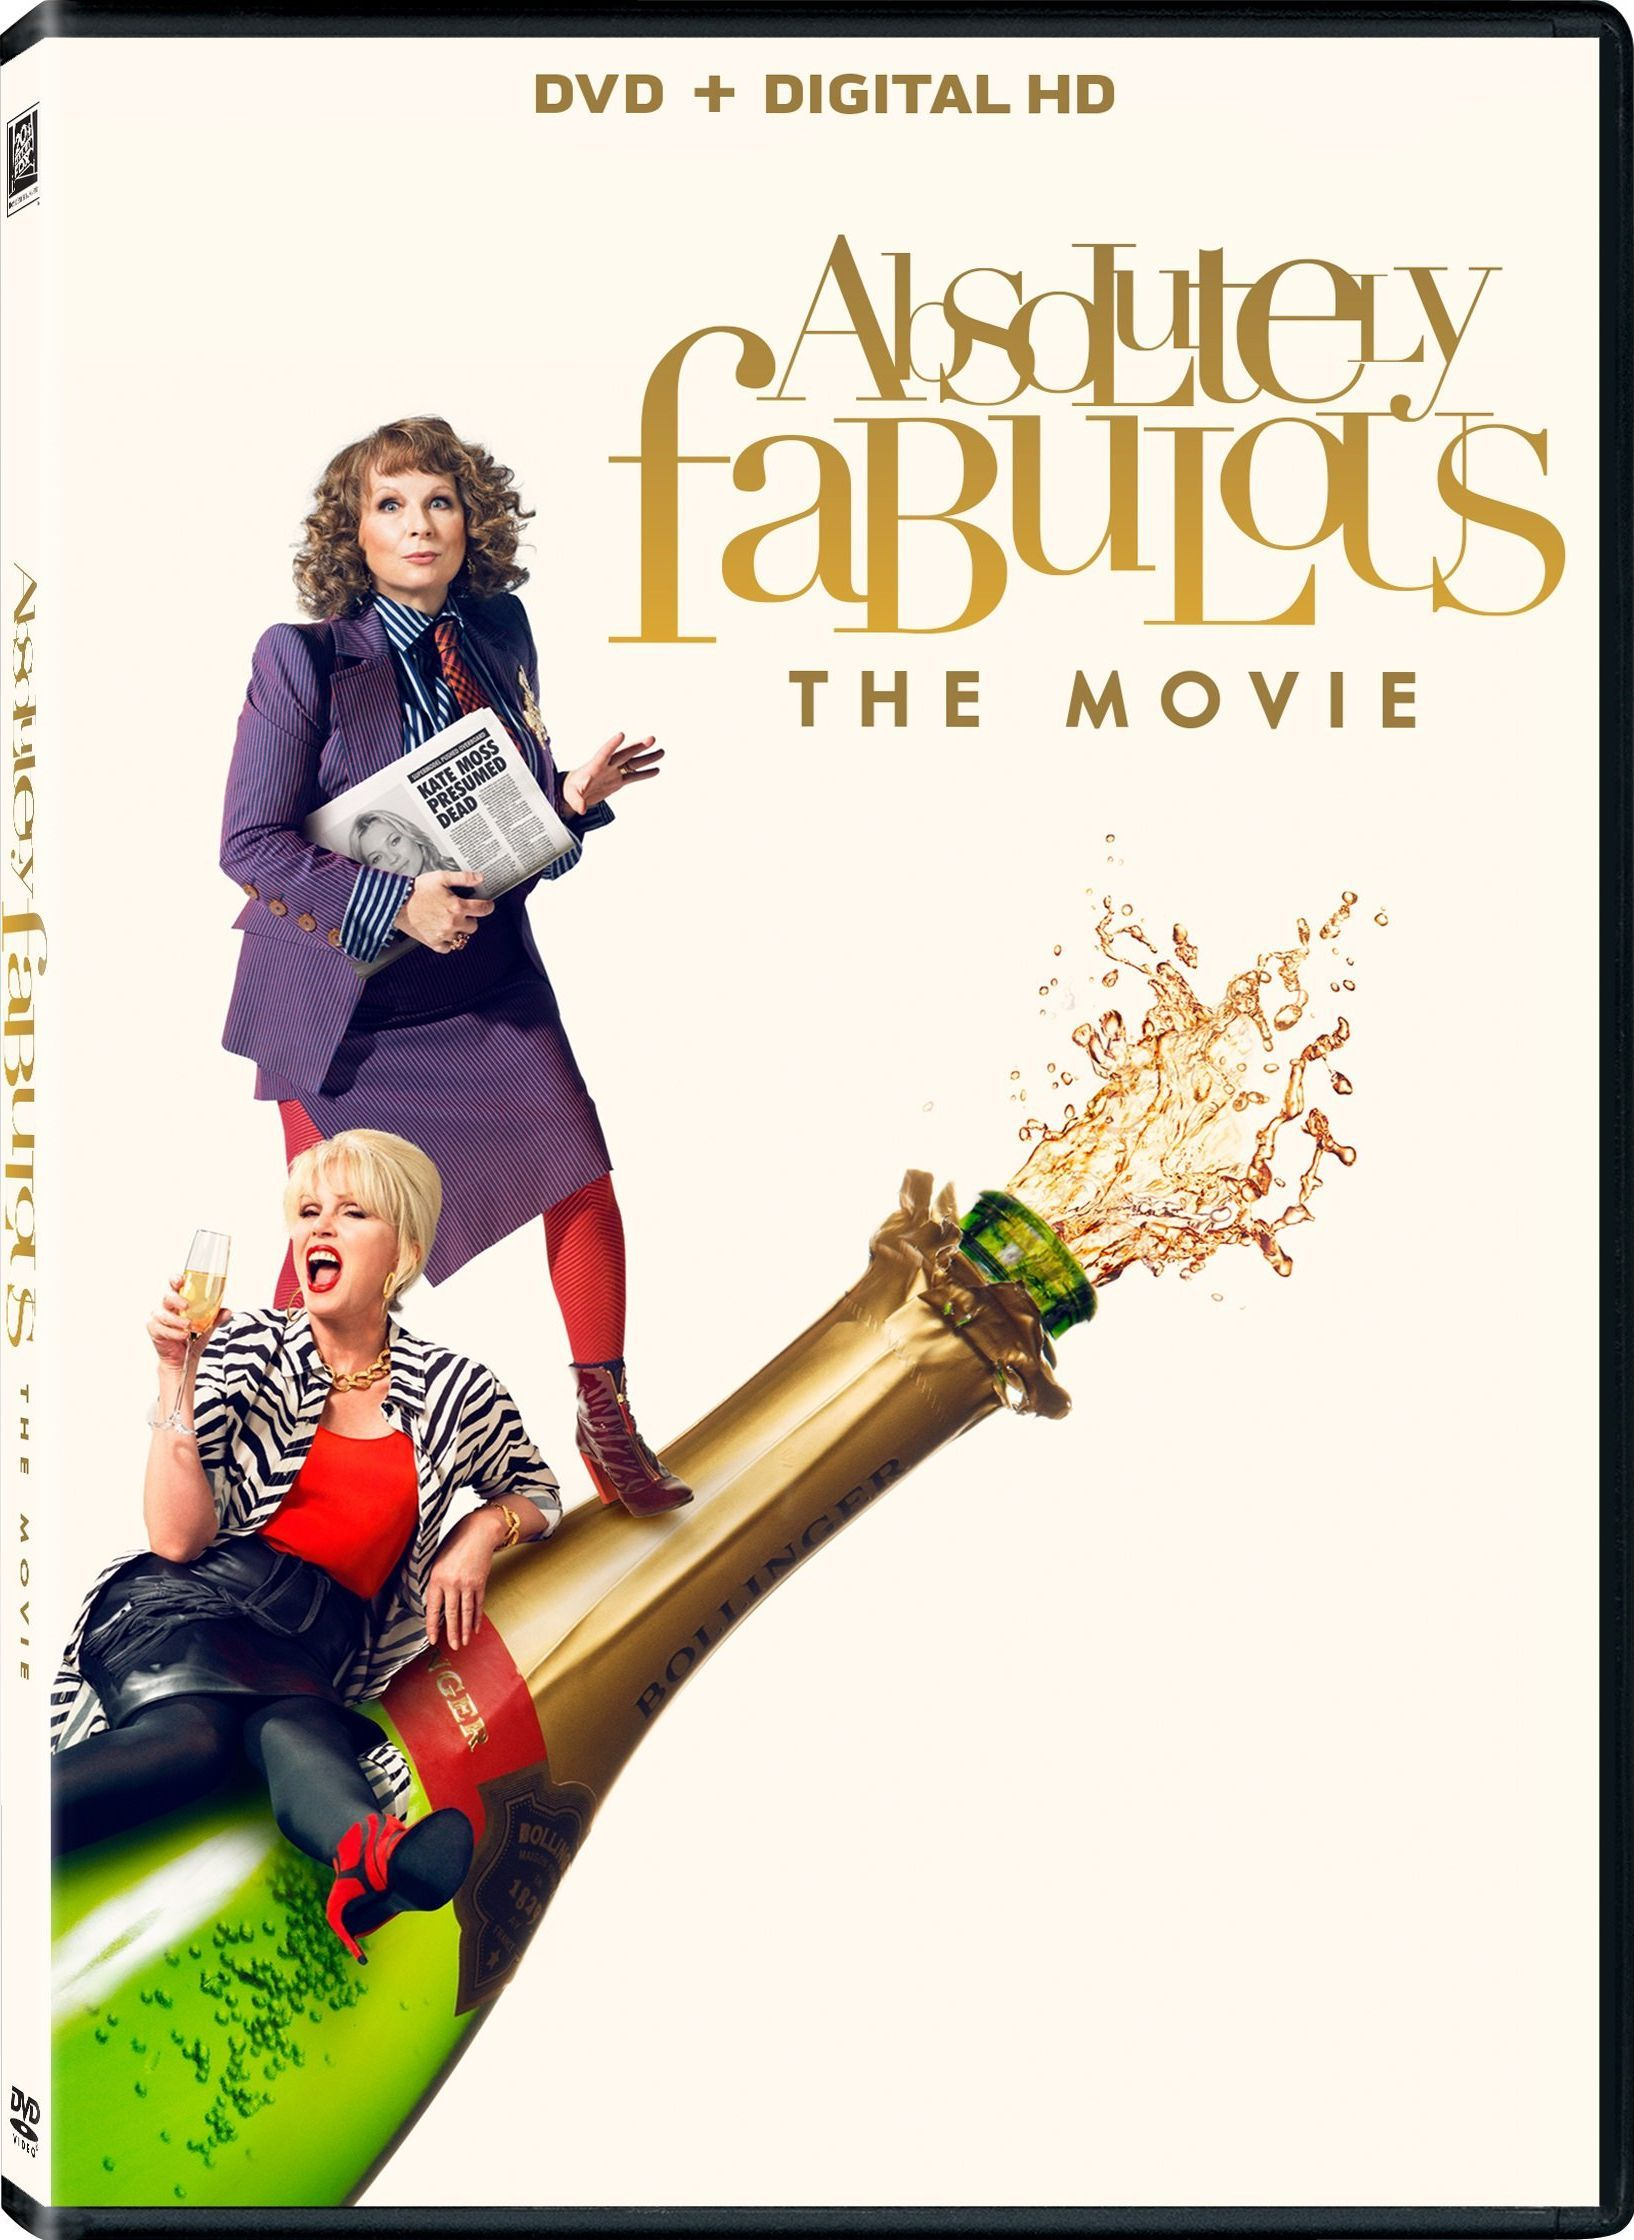 Absolutely Fabulous Streaming Movies Free Redbox Movies Full